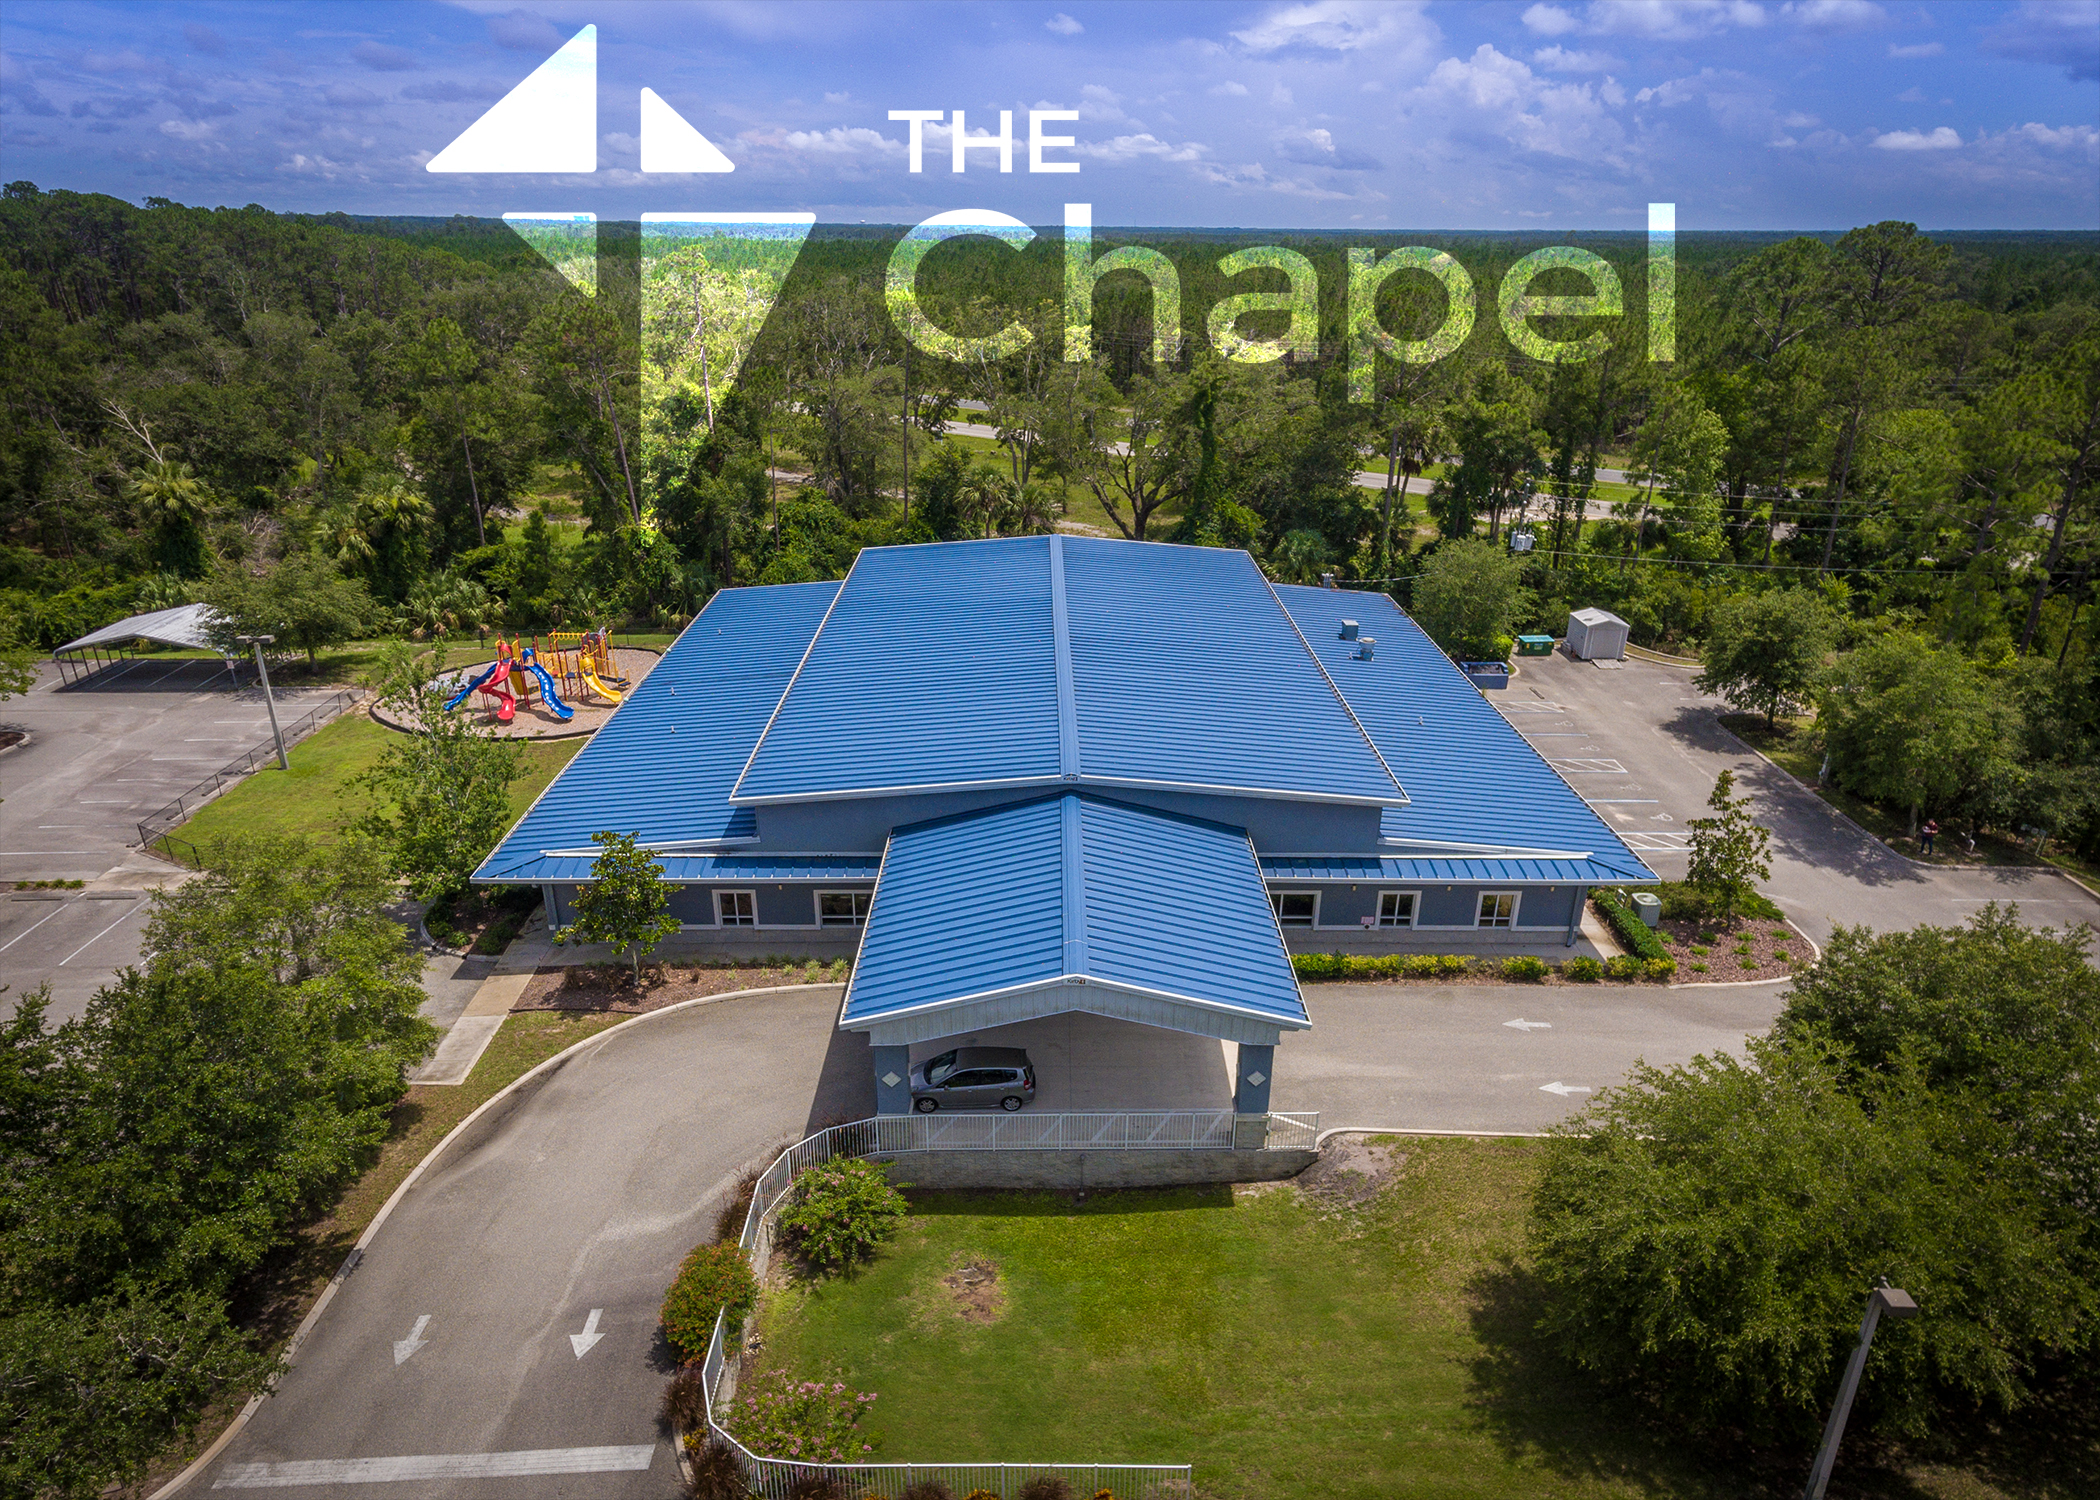 THE CHAPEL HOMEPAGE